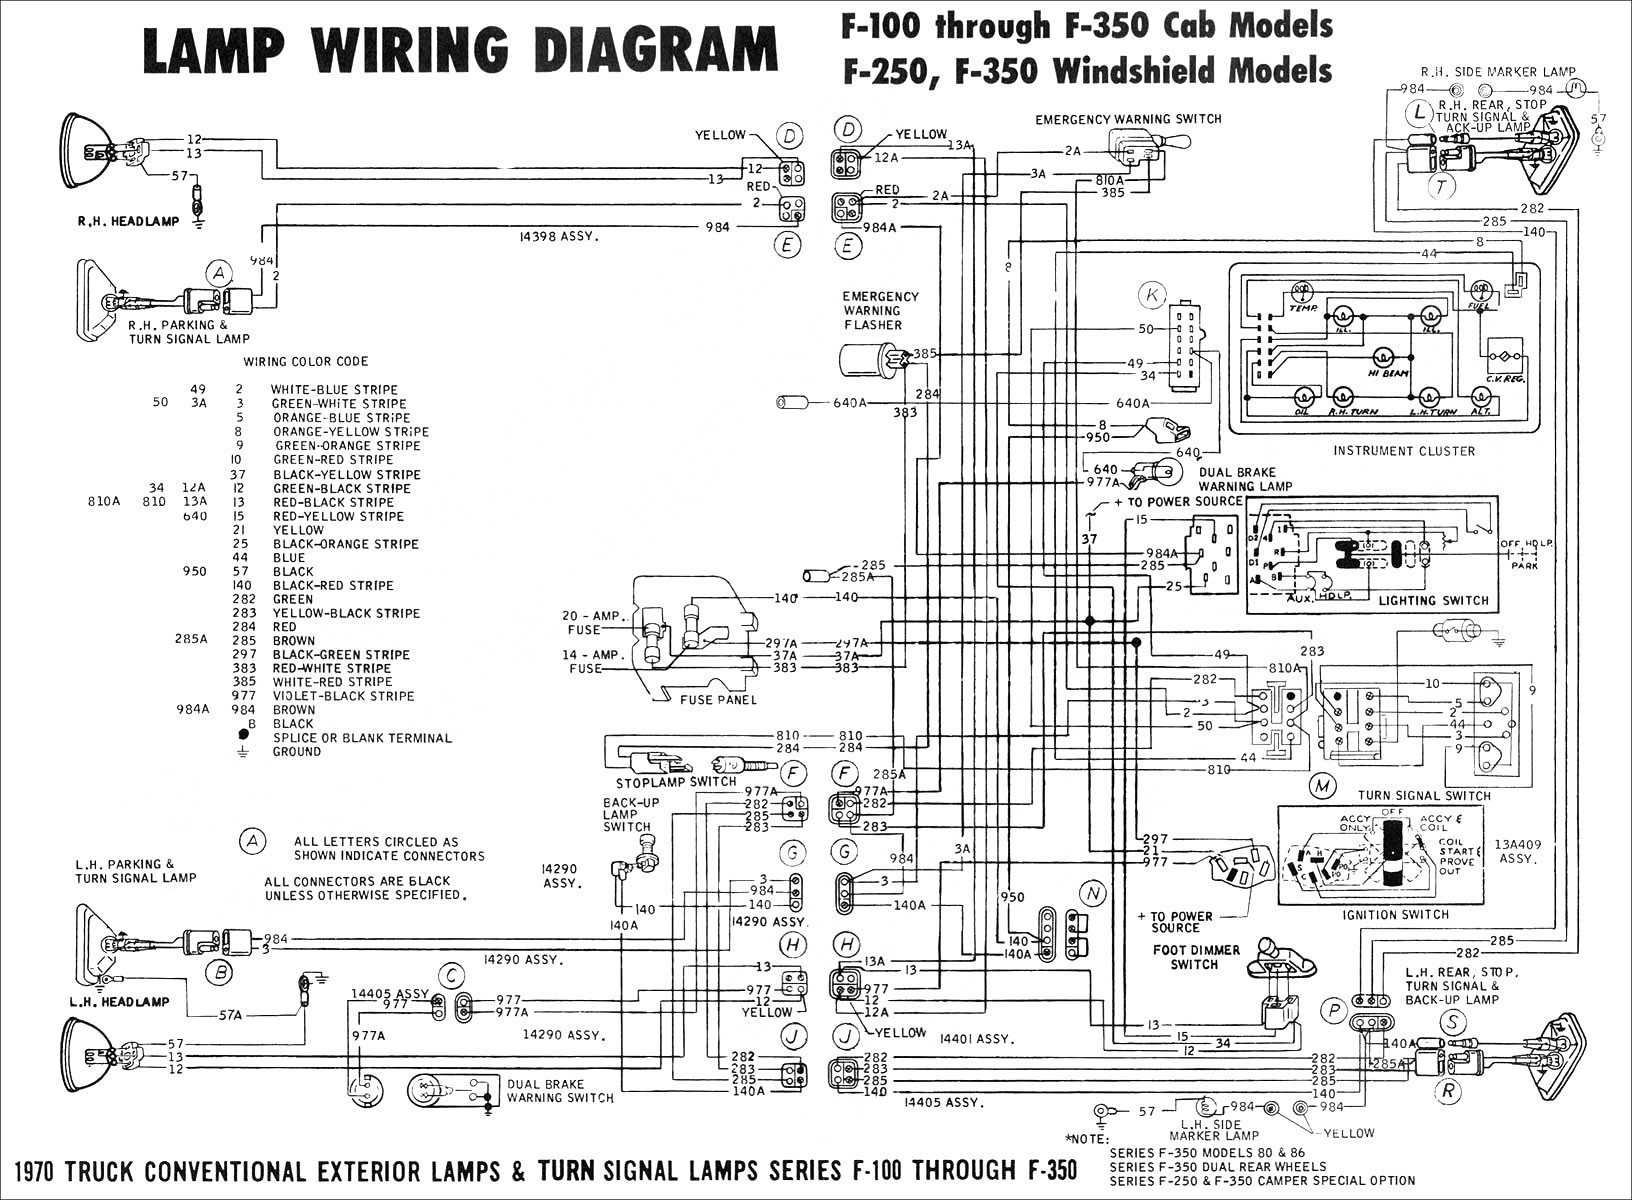 Toyota Tacoma Trailer Wiring Diagram Free Jbl Powered Speaker Diagrams Download Schematic Ta A Inspirationa 2000 F250